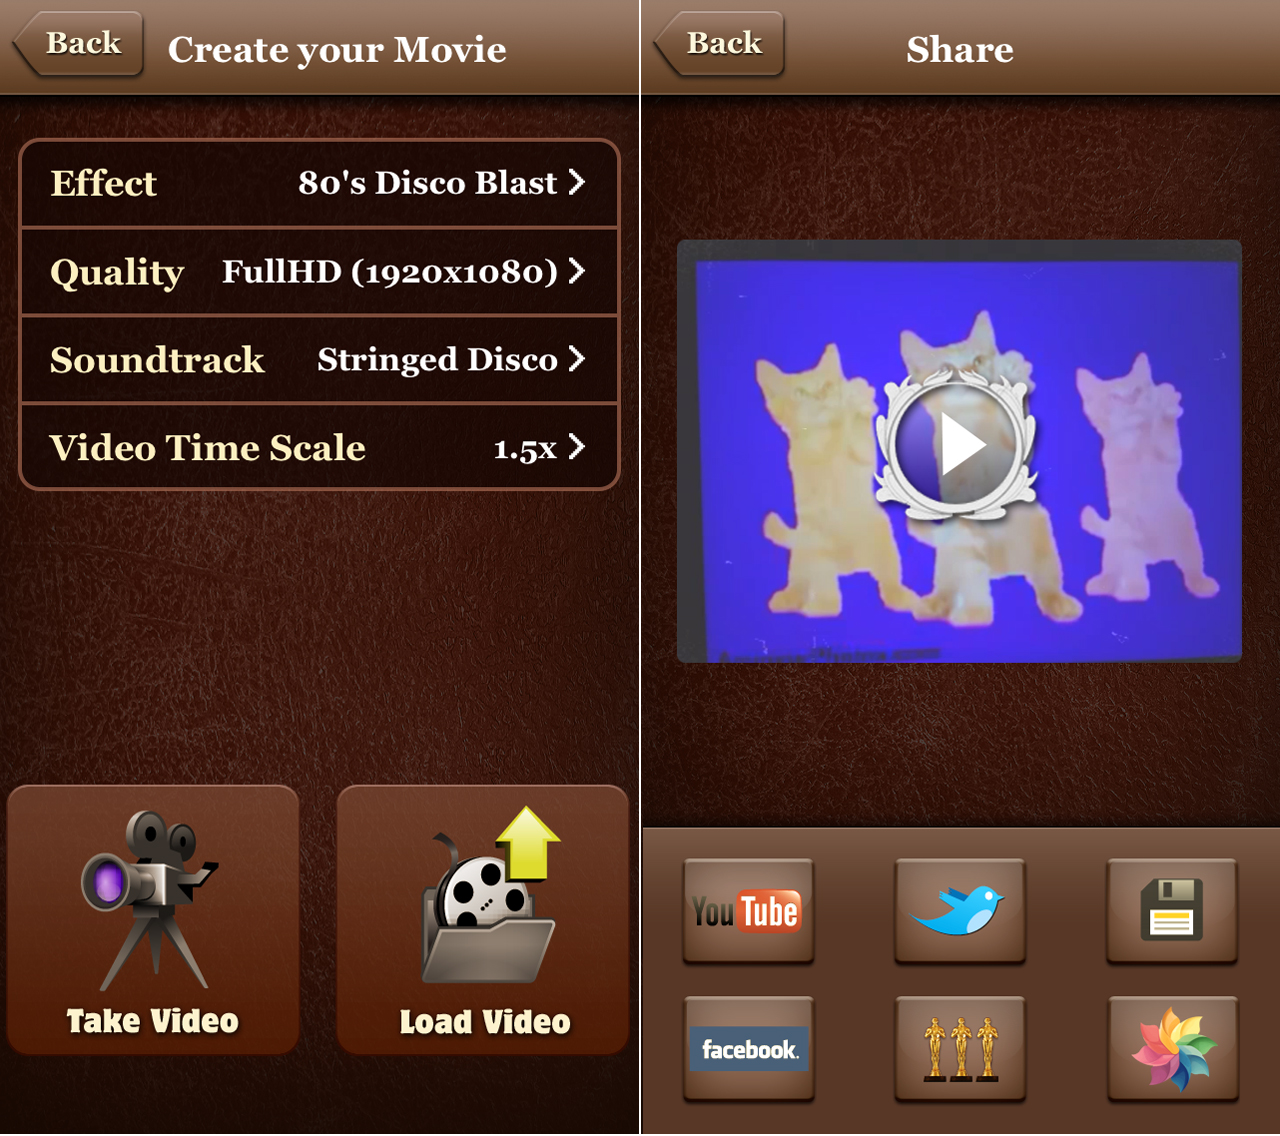 Vintage Video Making Comes To The iPhone 5 In Vintagio v4.1